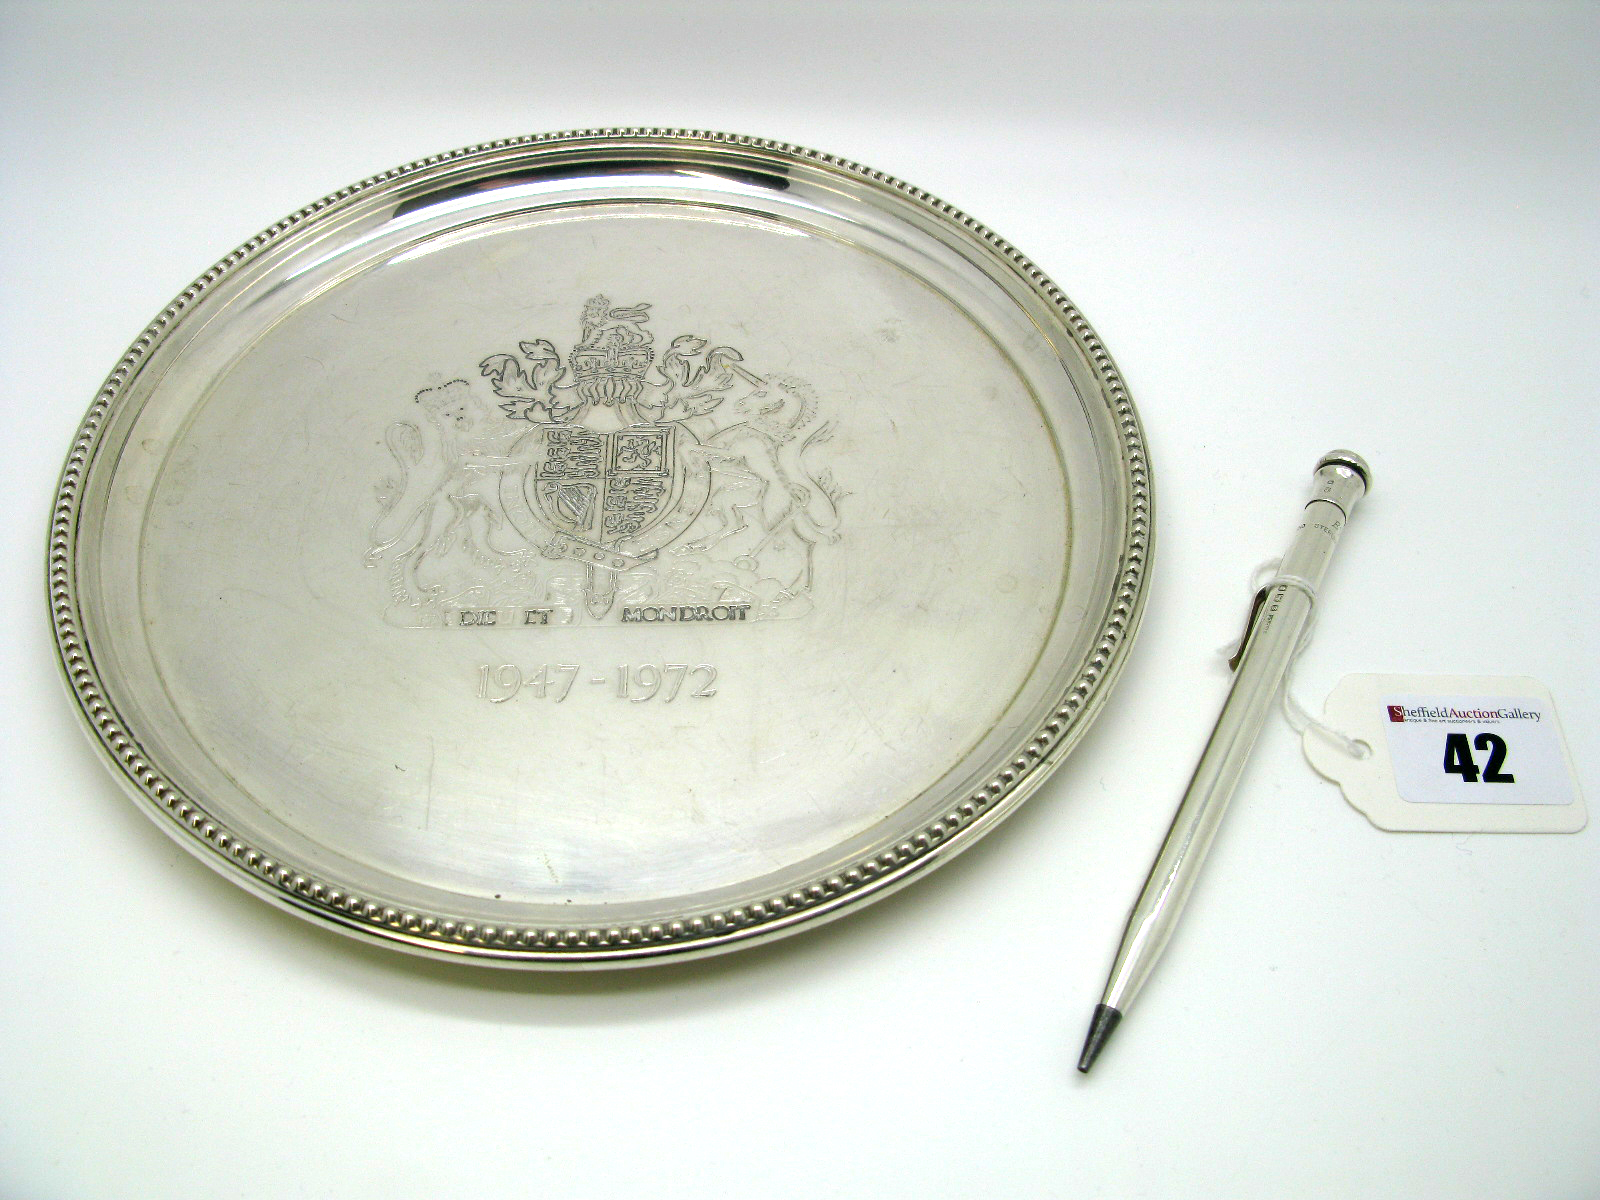 "Lot 42 - A Limited Edition Hallmarked Silver Commemorative Card Tray, H.H, Birmingham 1971, ""1947-1972"","